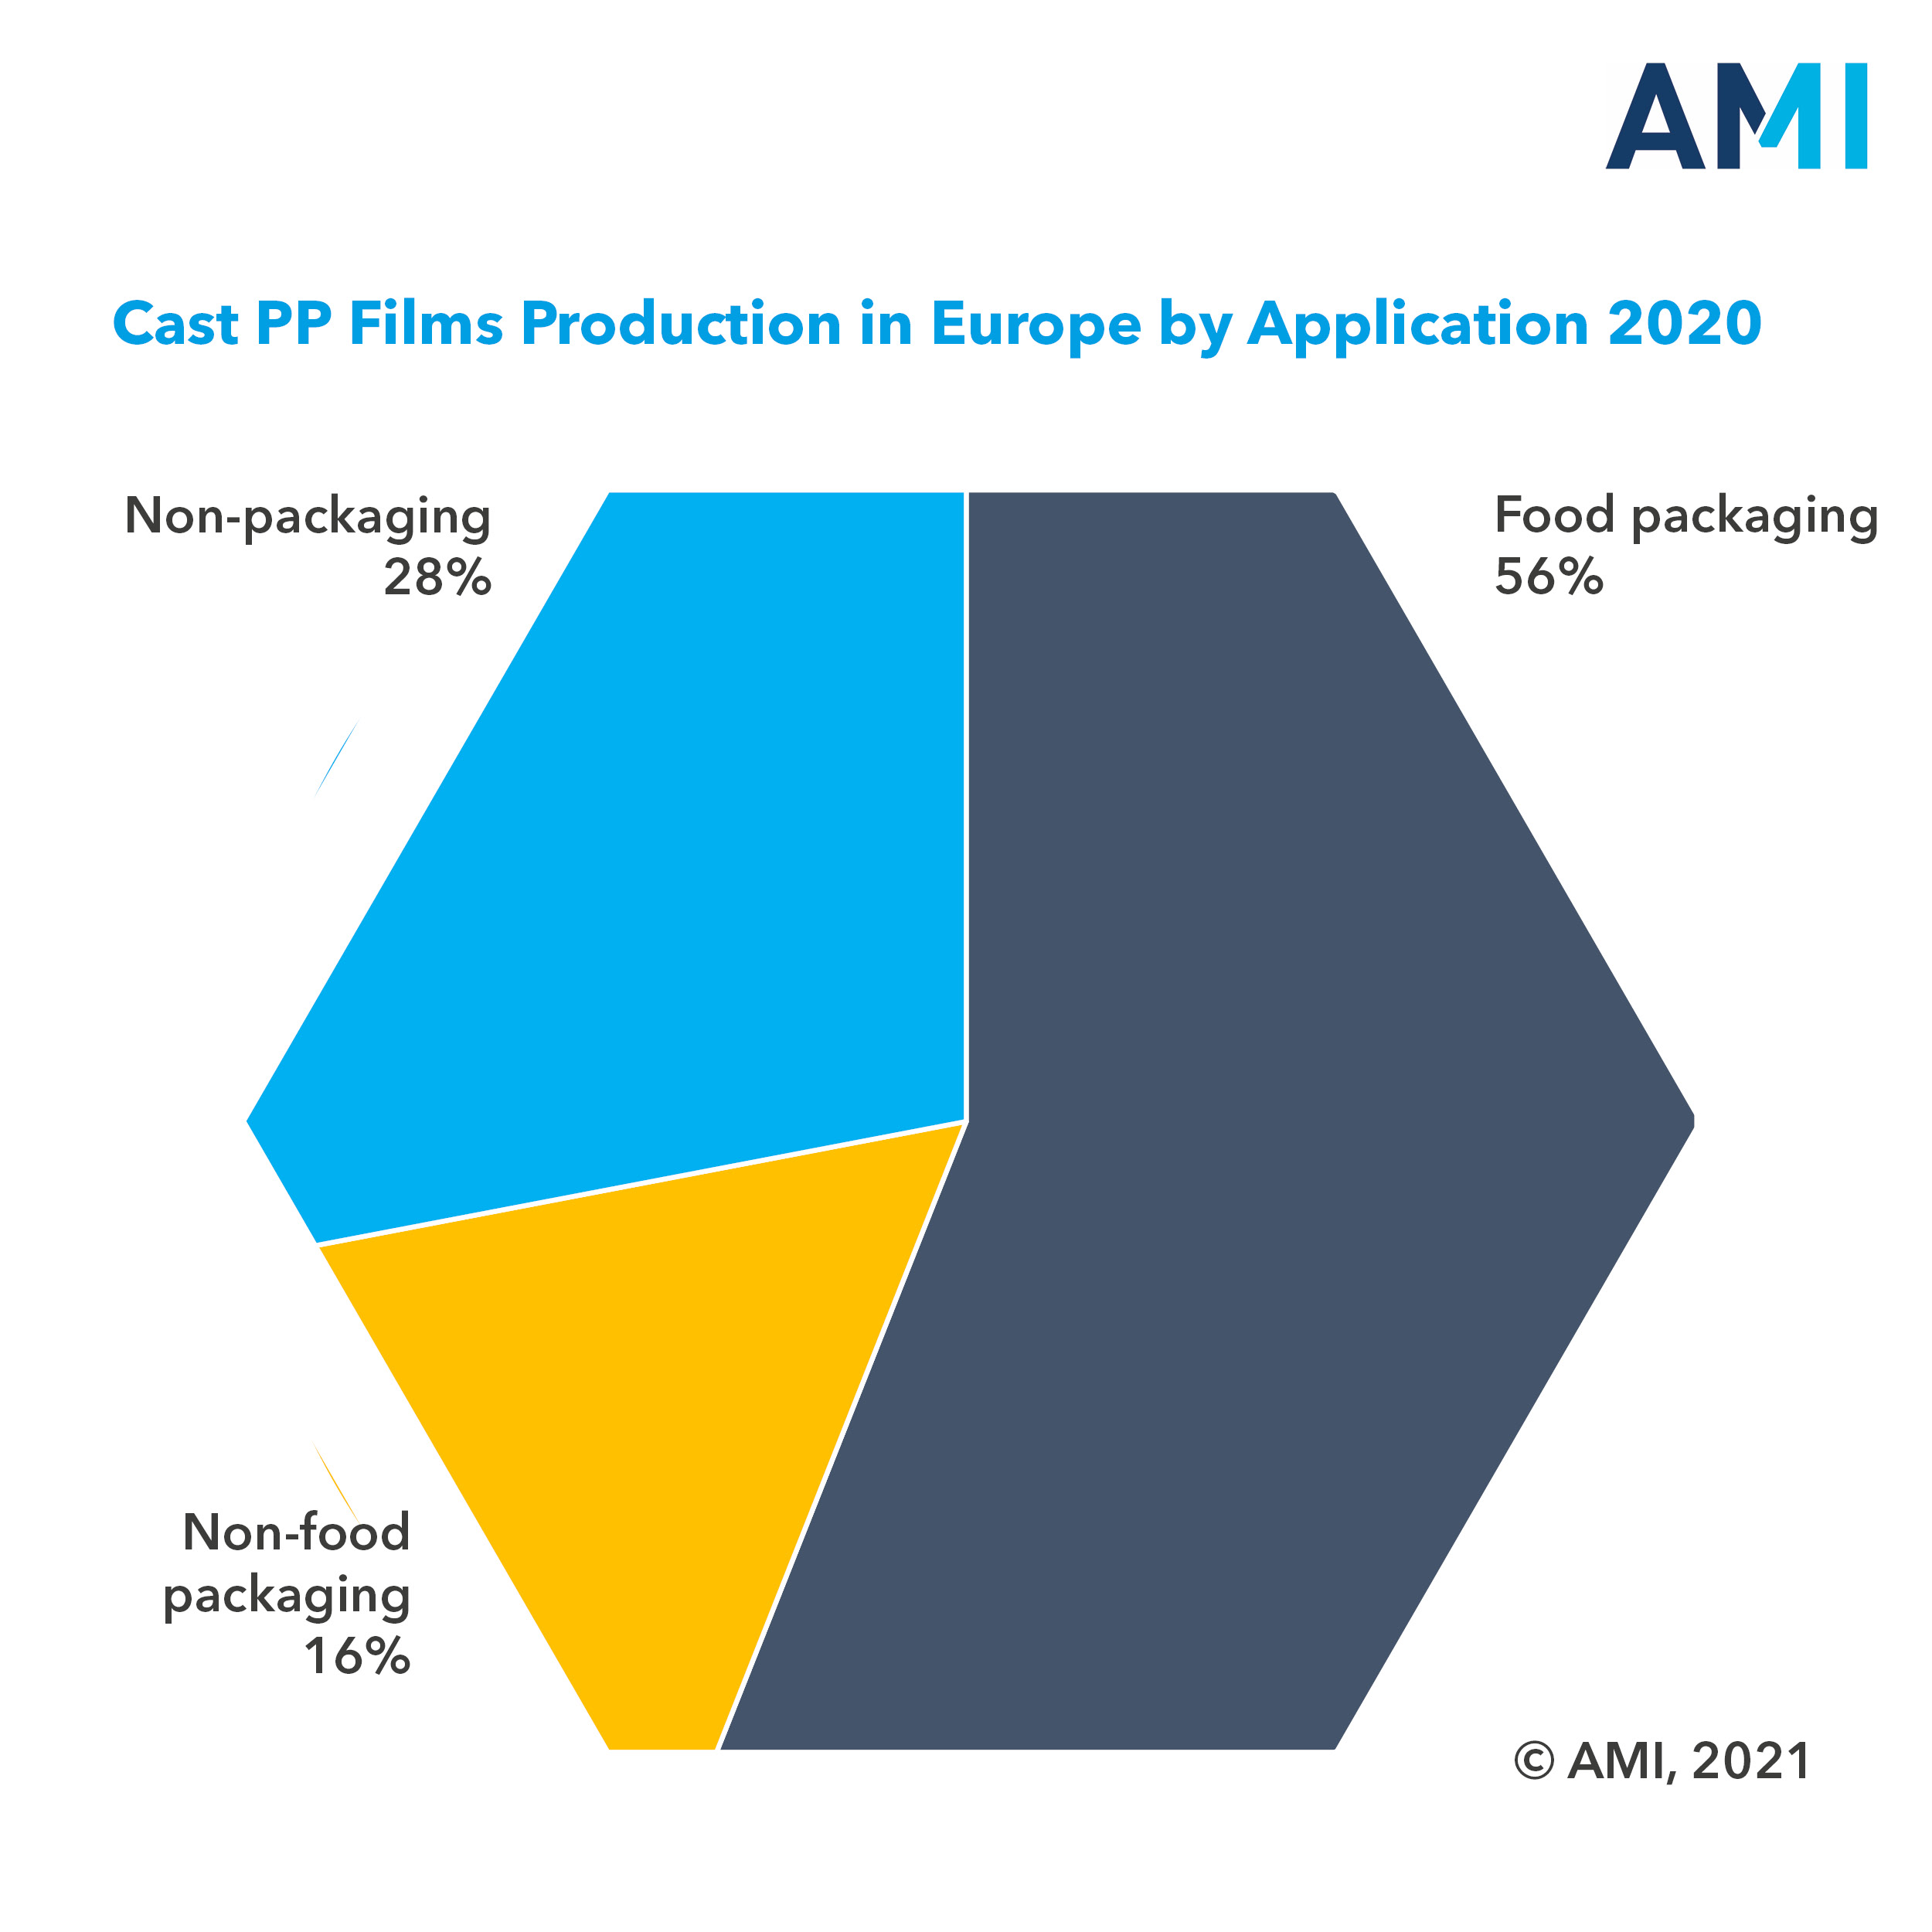 Sustainability drive creates new growth opportunities for Cast PP films in Europe